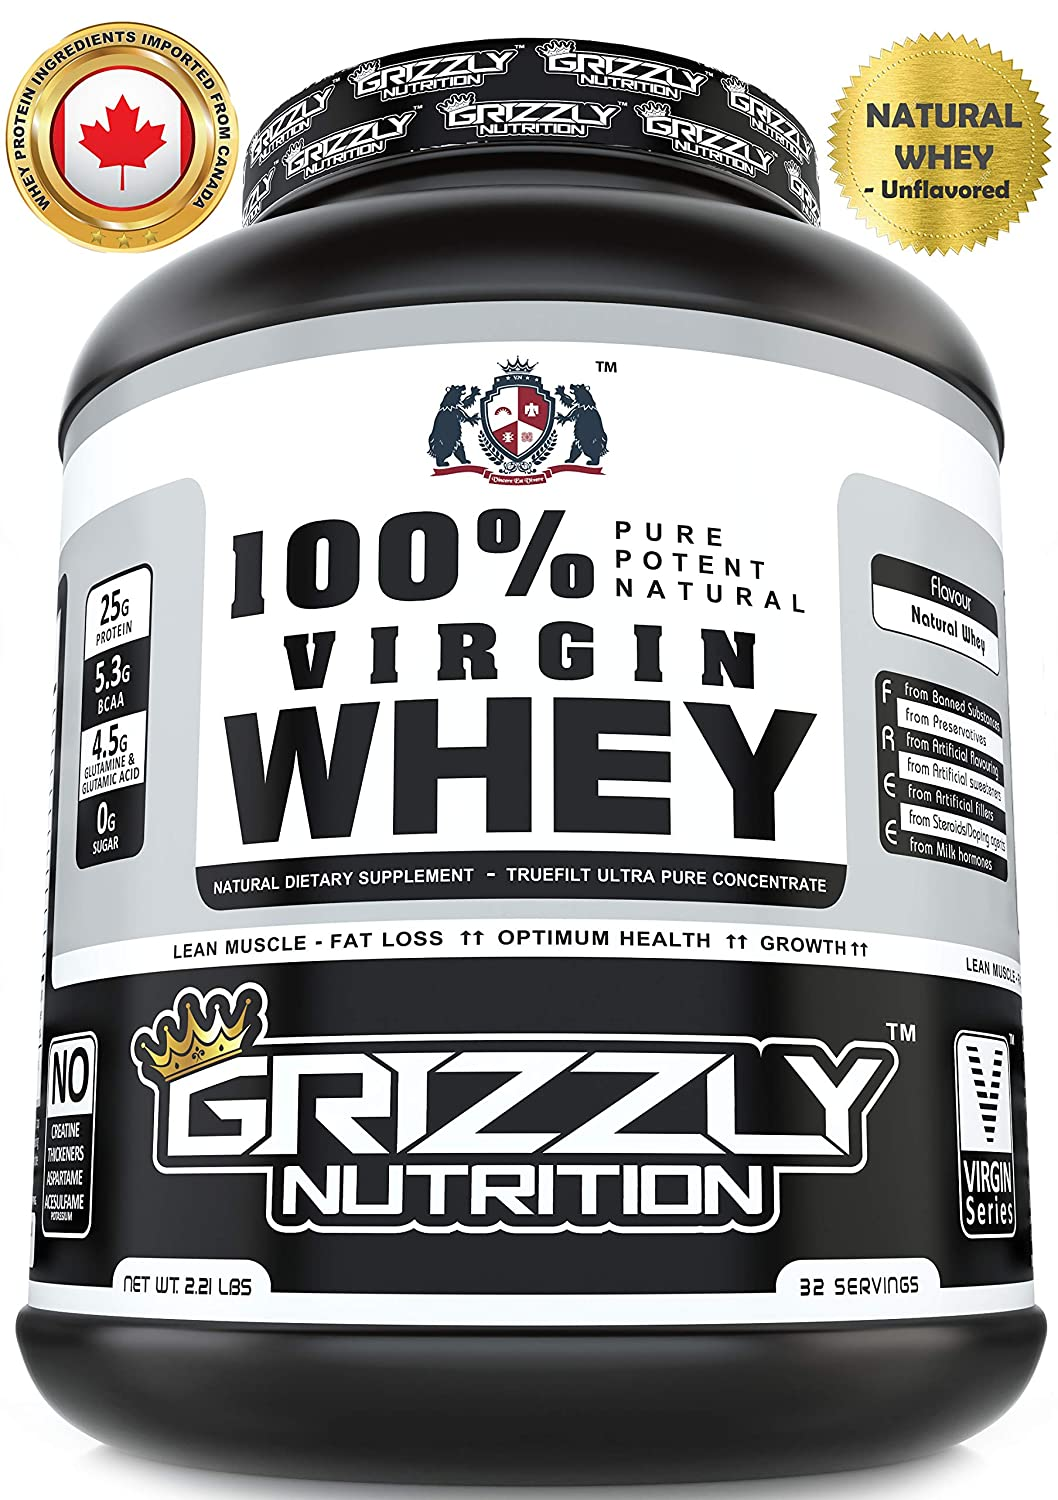 cb7512d1b0c73 Grizzly Nutrition - 100% Virgin whey protein - with digestive enzymes    probiotics - 2.21lb-1kg  Amazon.in  Health   Personal Care